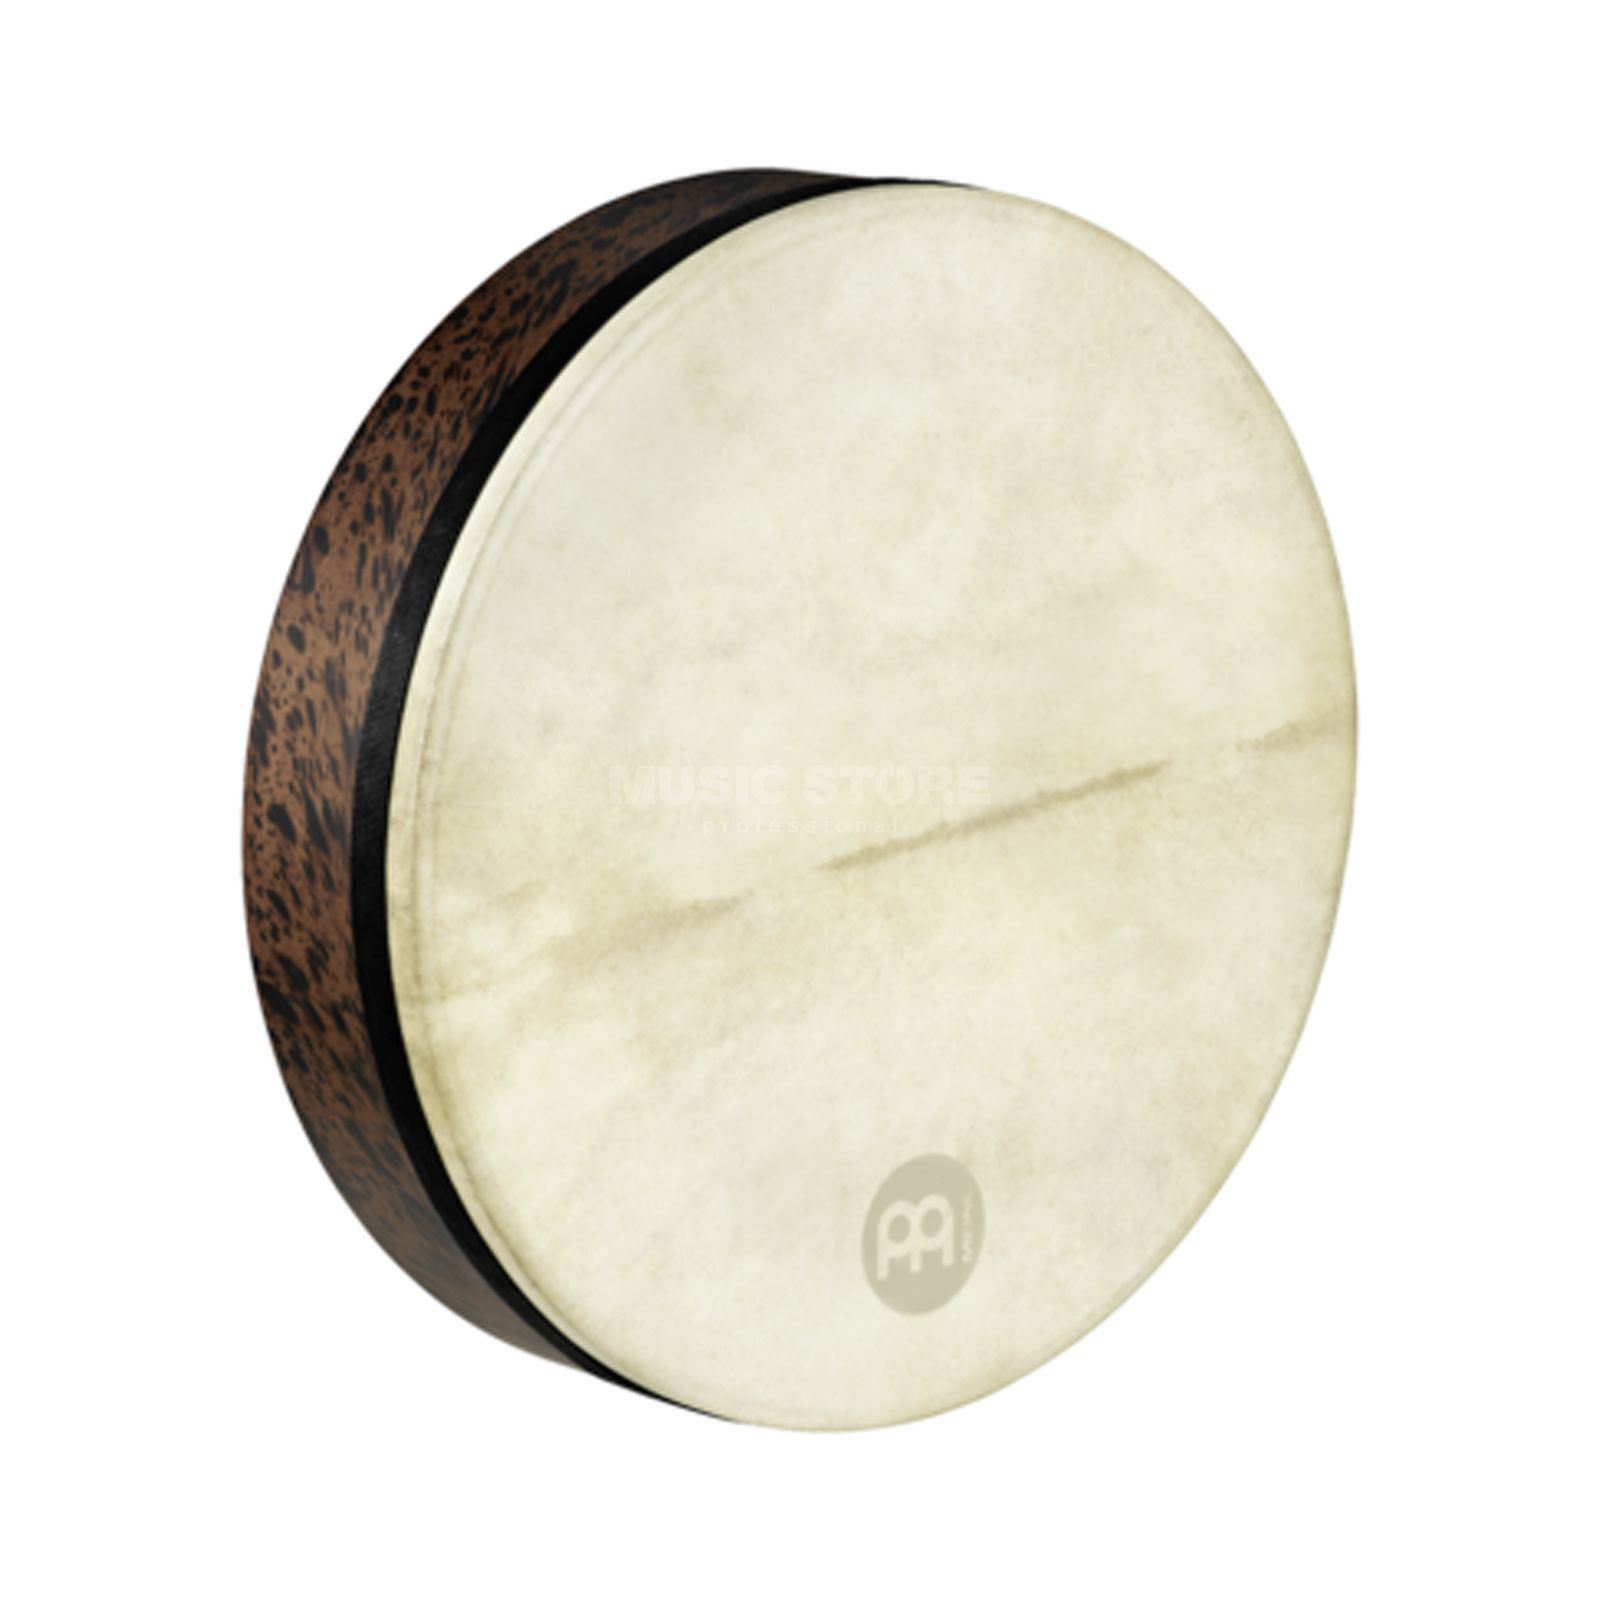 "Meinl Frame Drum Tar FD18T-D, 18"", Deep Shell, Brown Burl #BB Изображение товара"